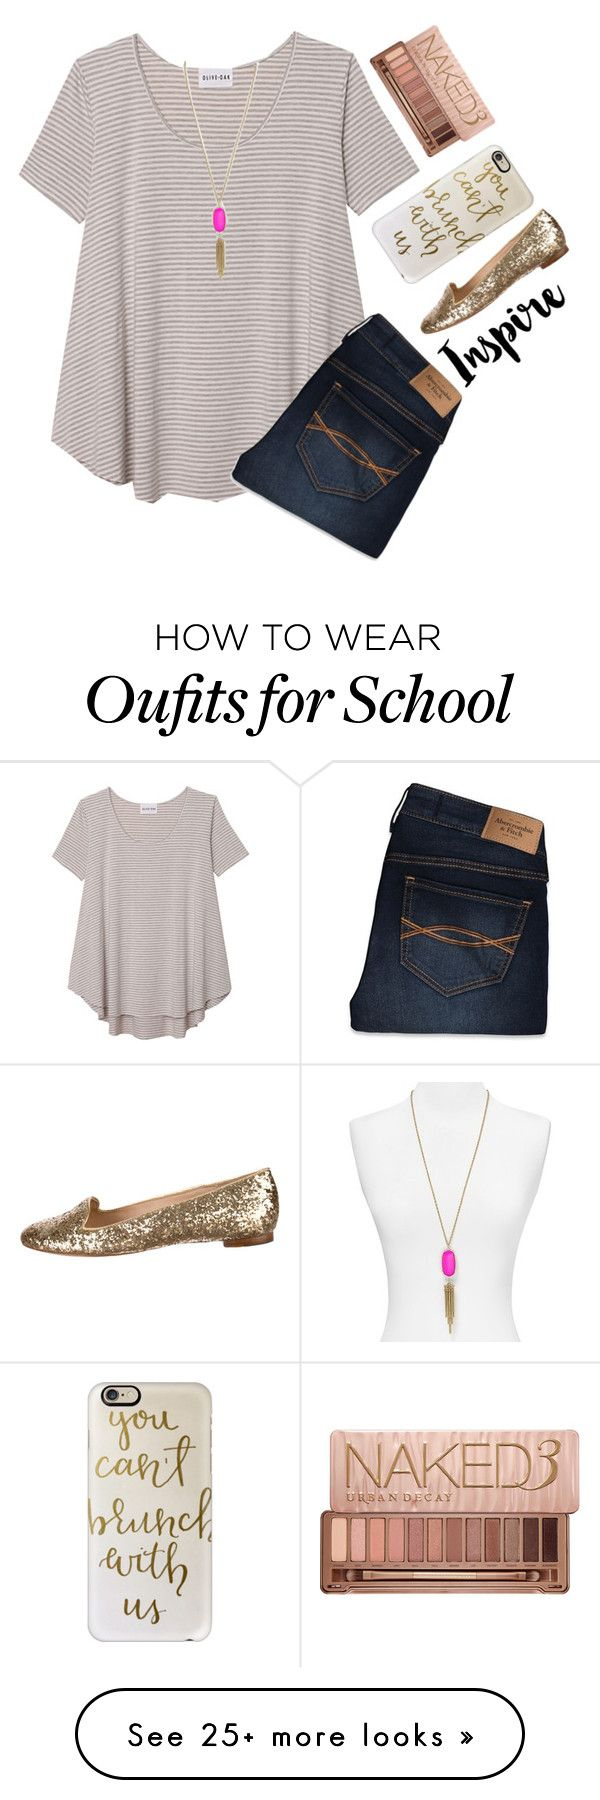 """""""10 days left of school"""" by emmagracejoness on Polyvore featuring Olive + Oak, Casetify, Kate Spade, Urban Decay, Abercrombie & Fitch and Kendra Scott"""